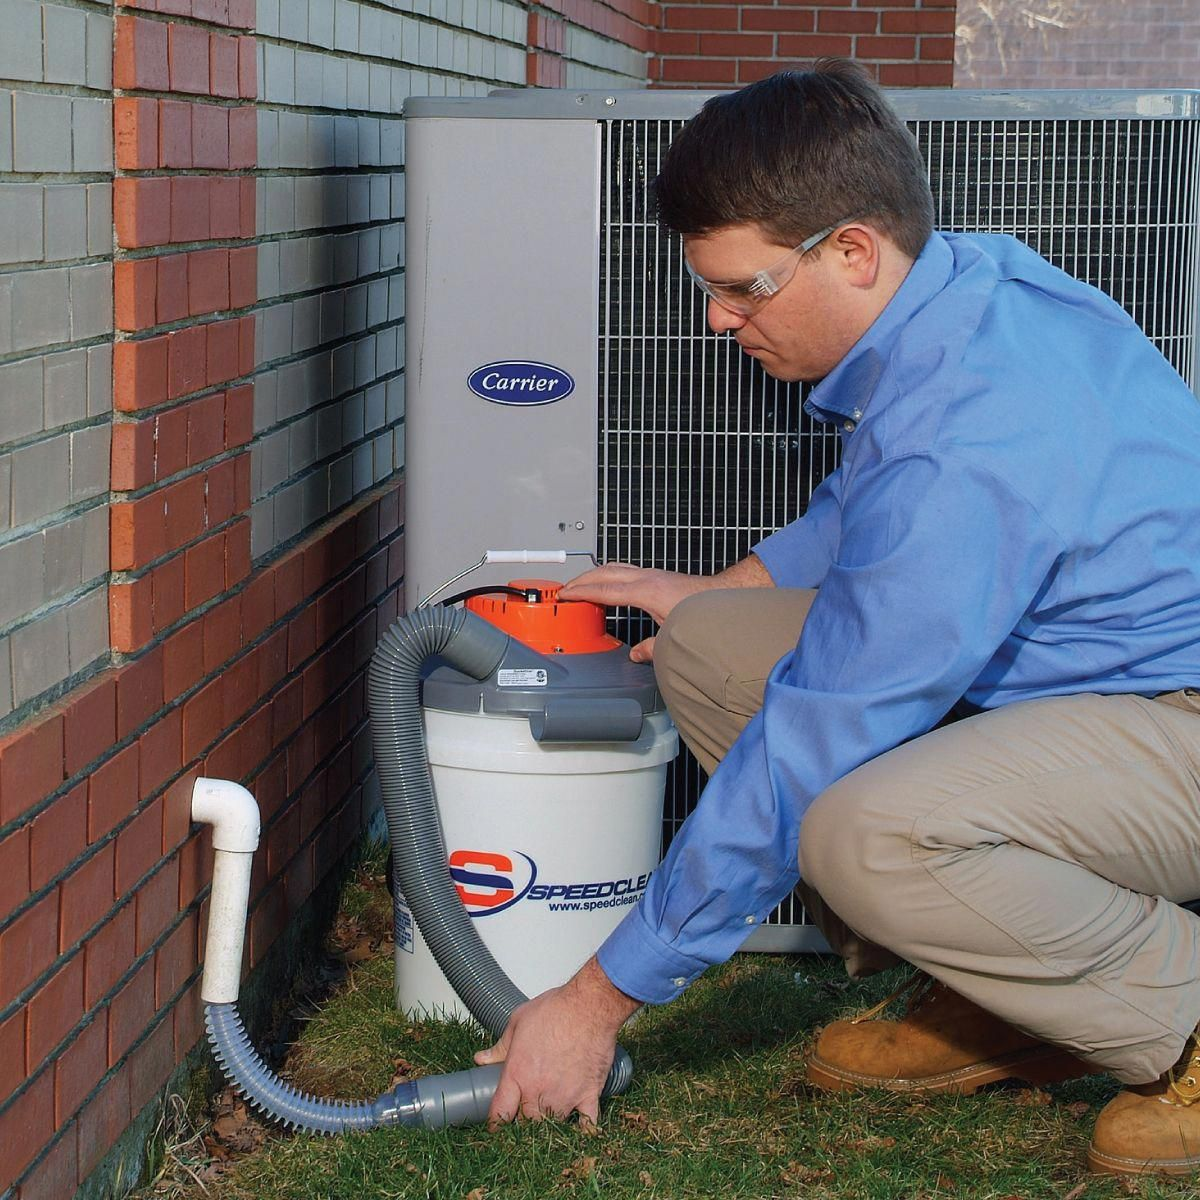 Pin by hvac on HVAC Central air conditioning system, Diy